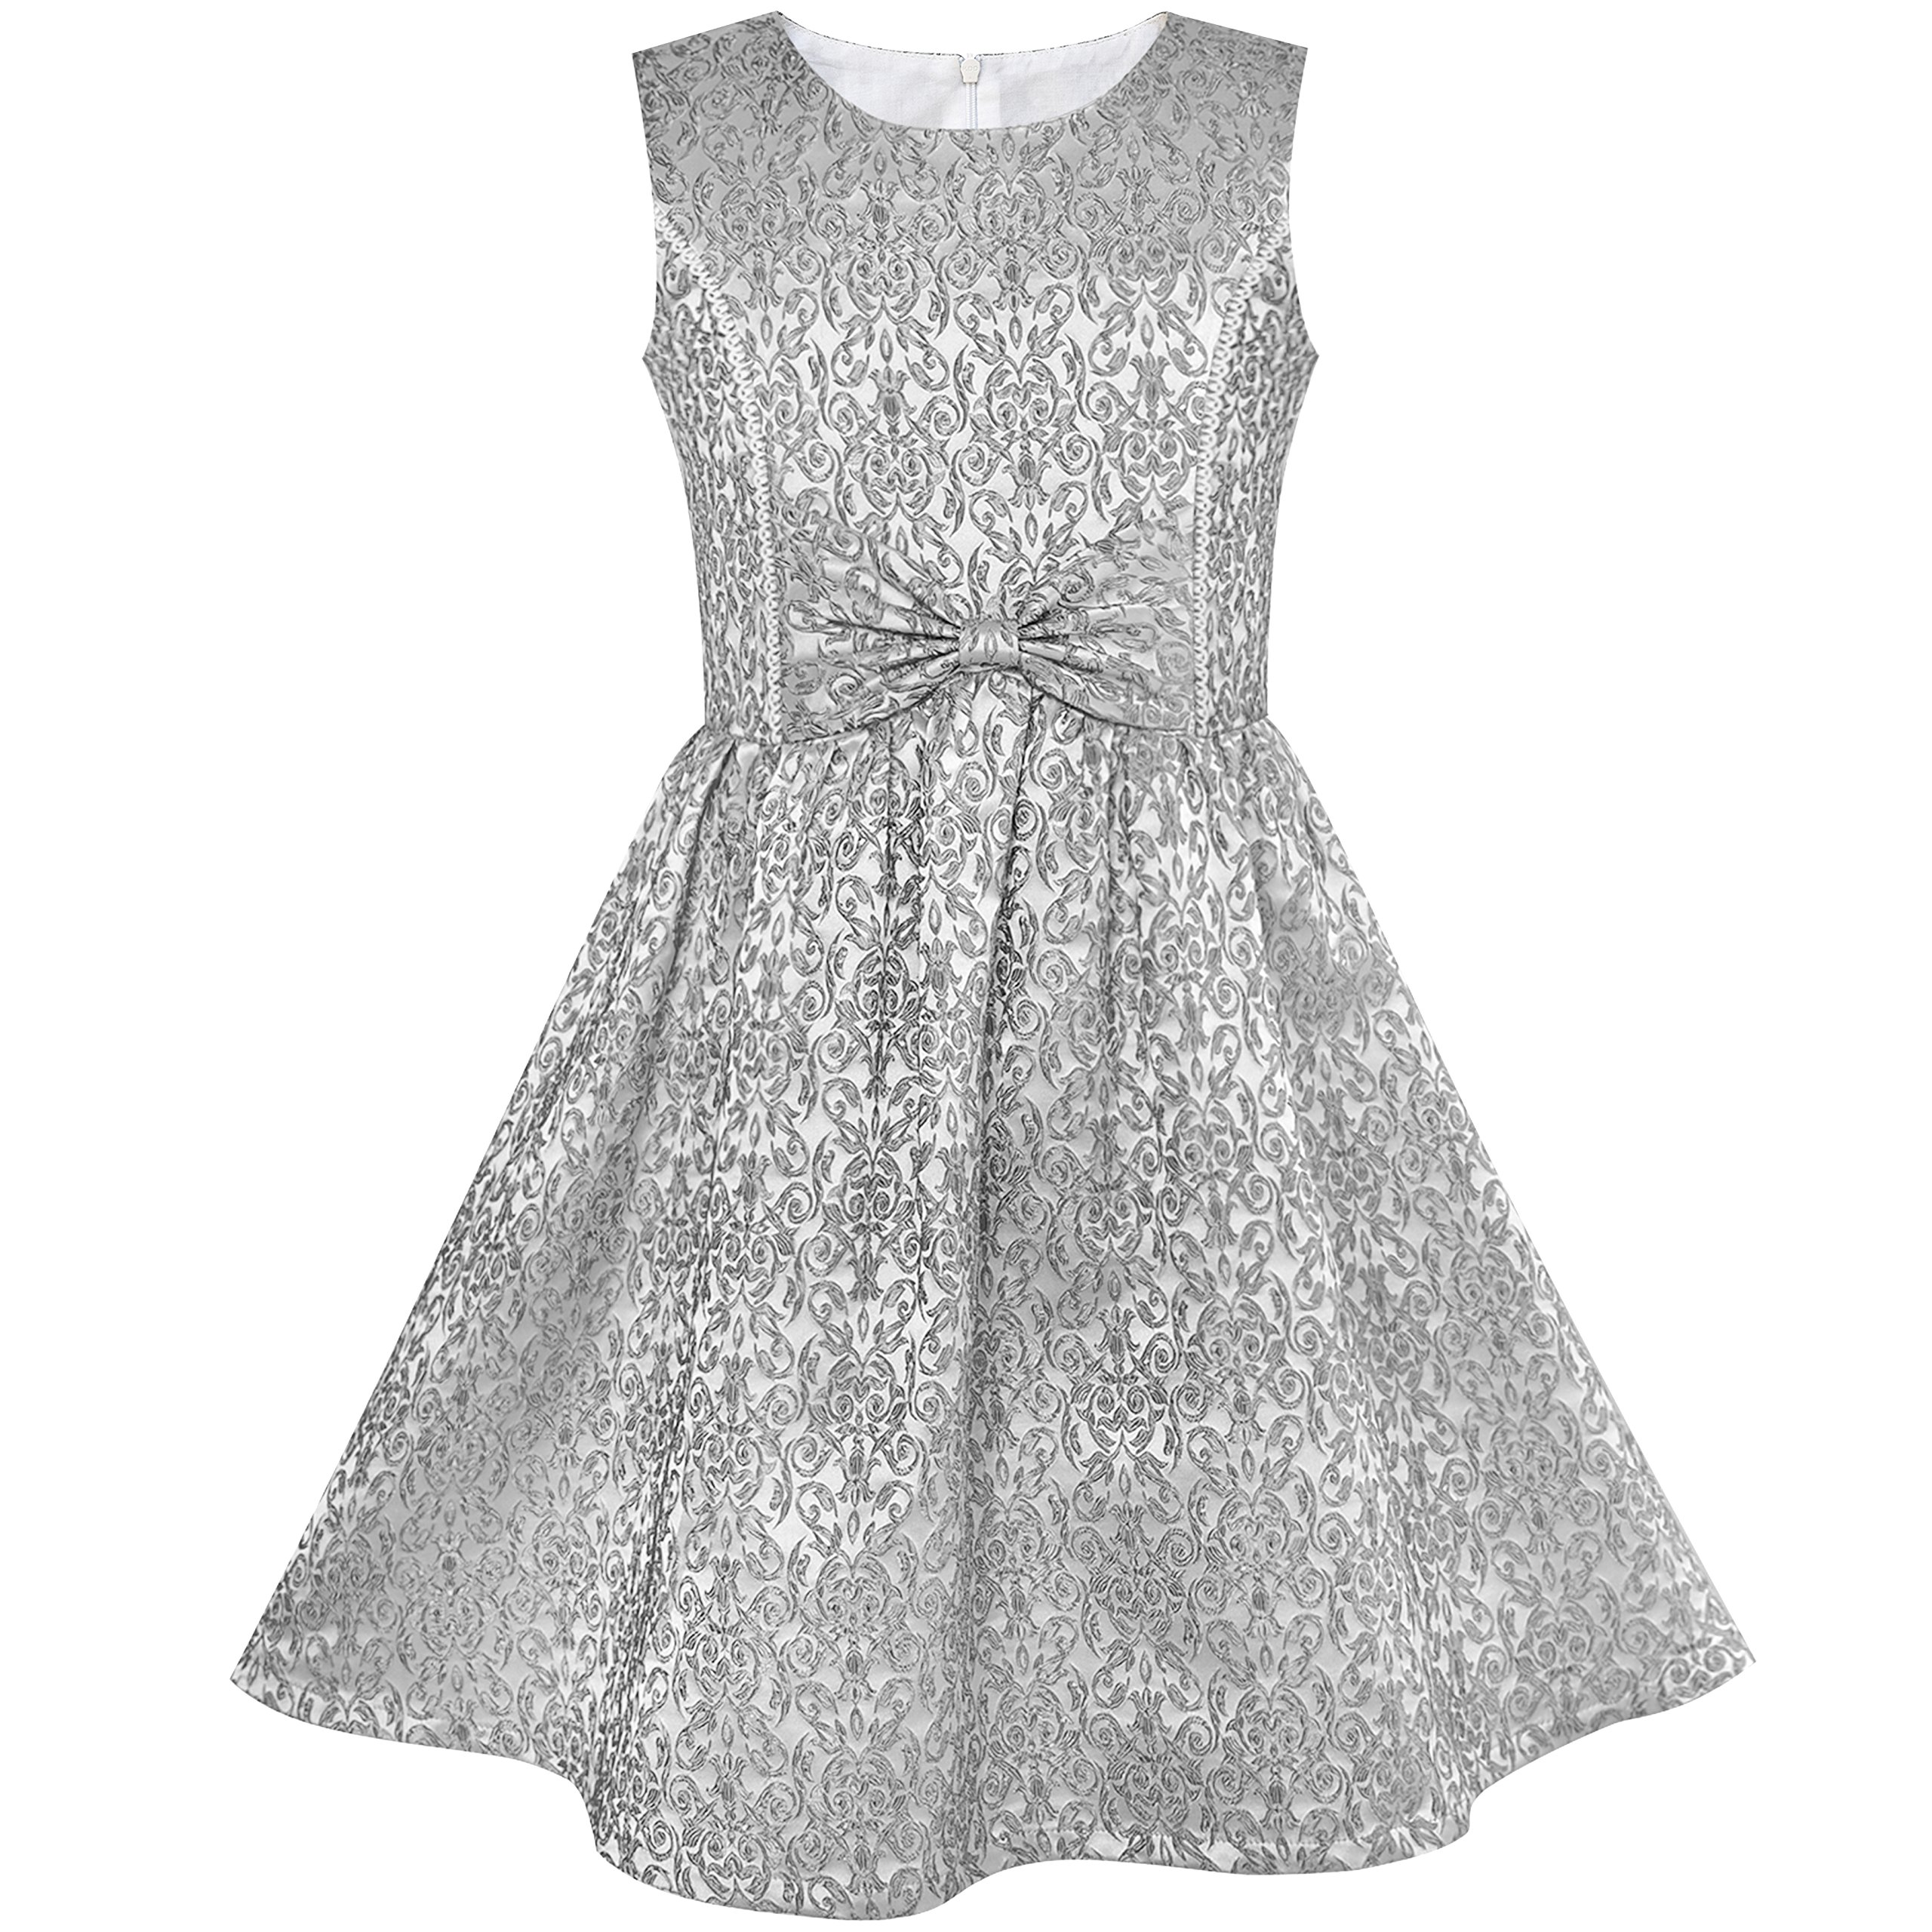 Sunny Fashion LS24 Girls Dress Gray Bow Tie Jacquard Fit and Flare Princess Size 8